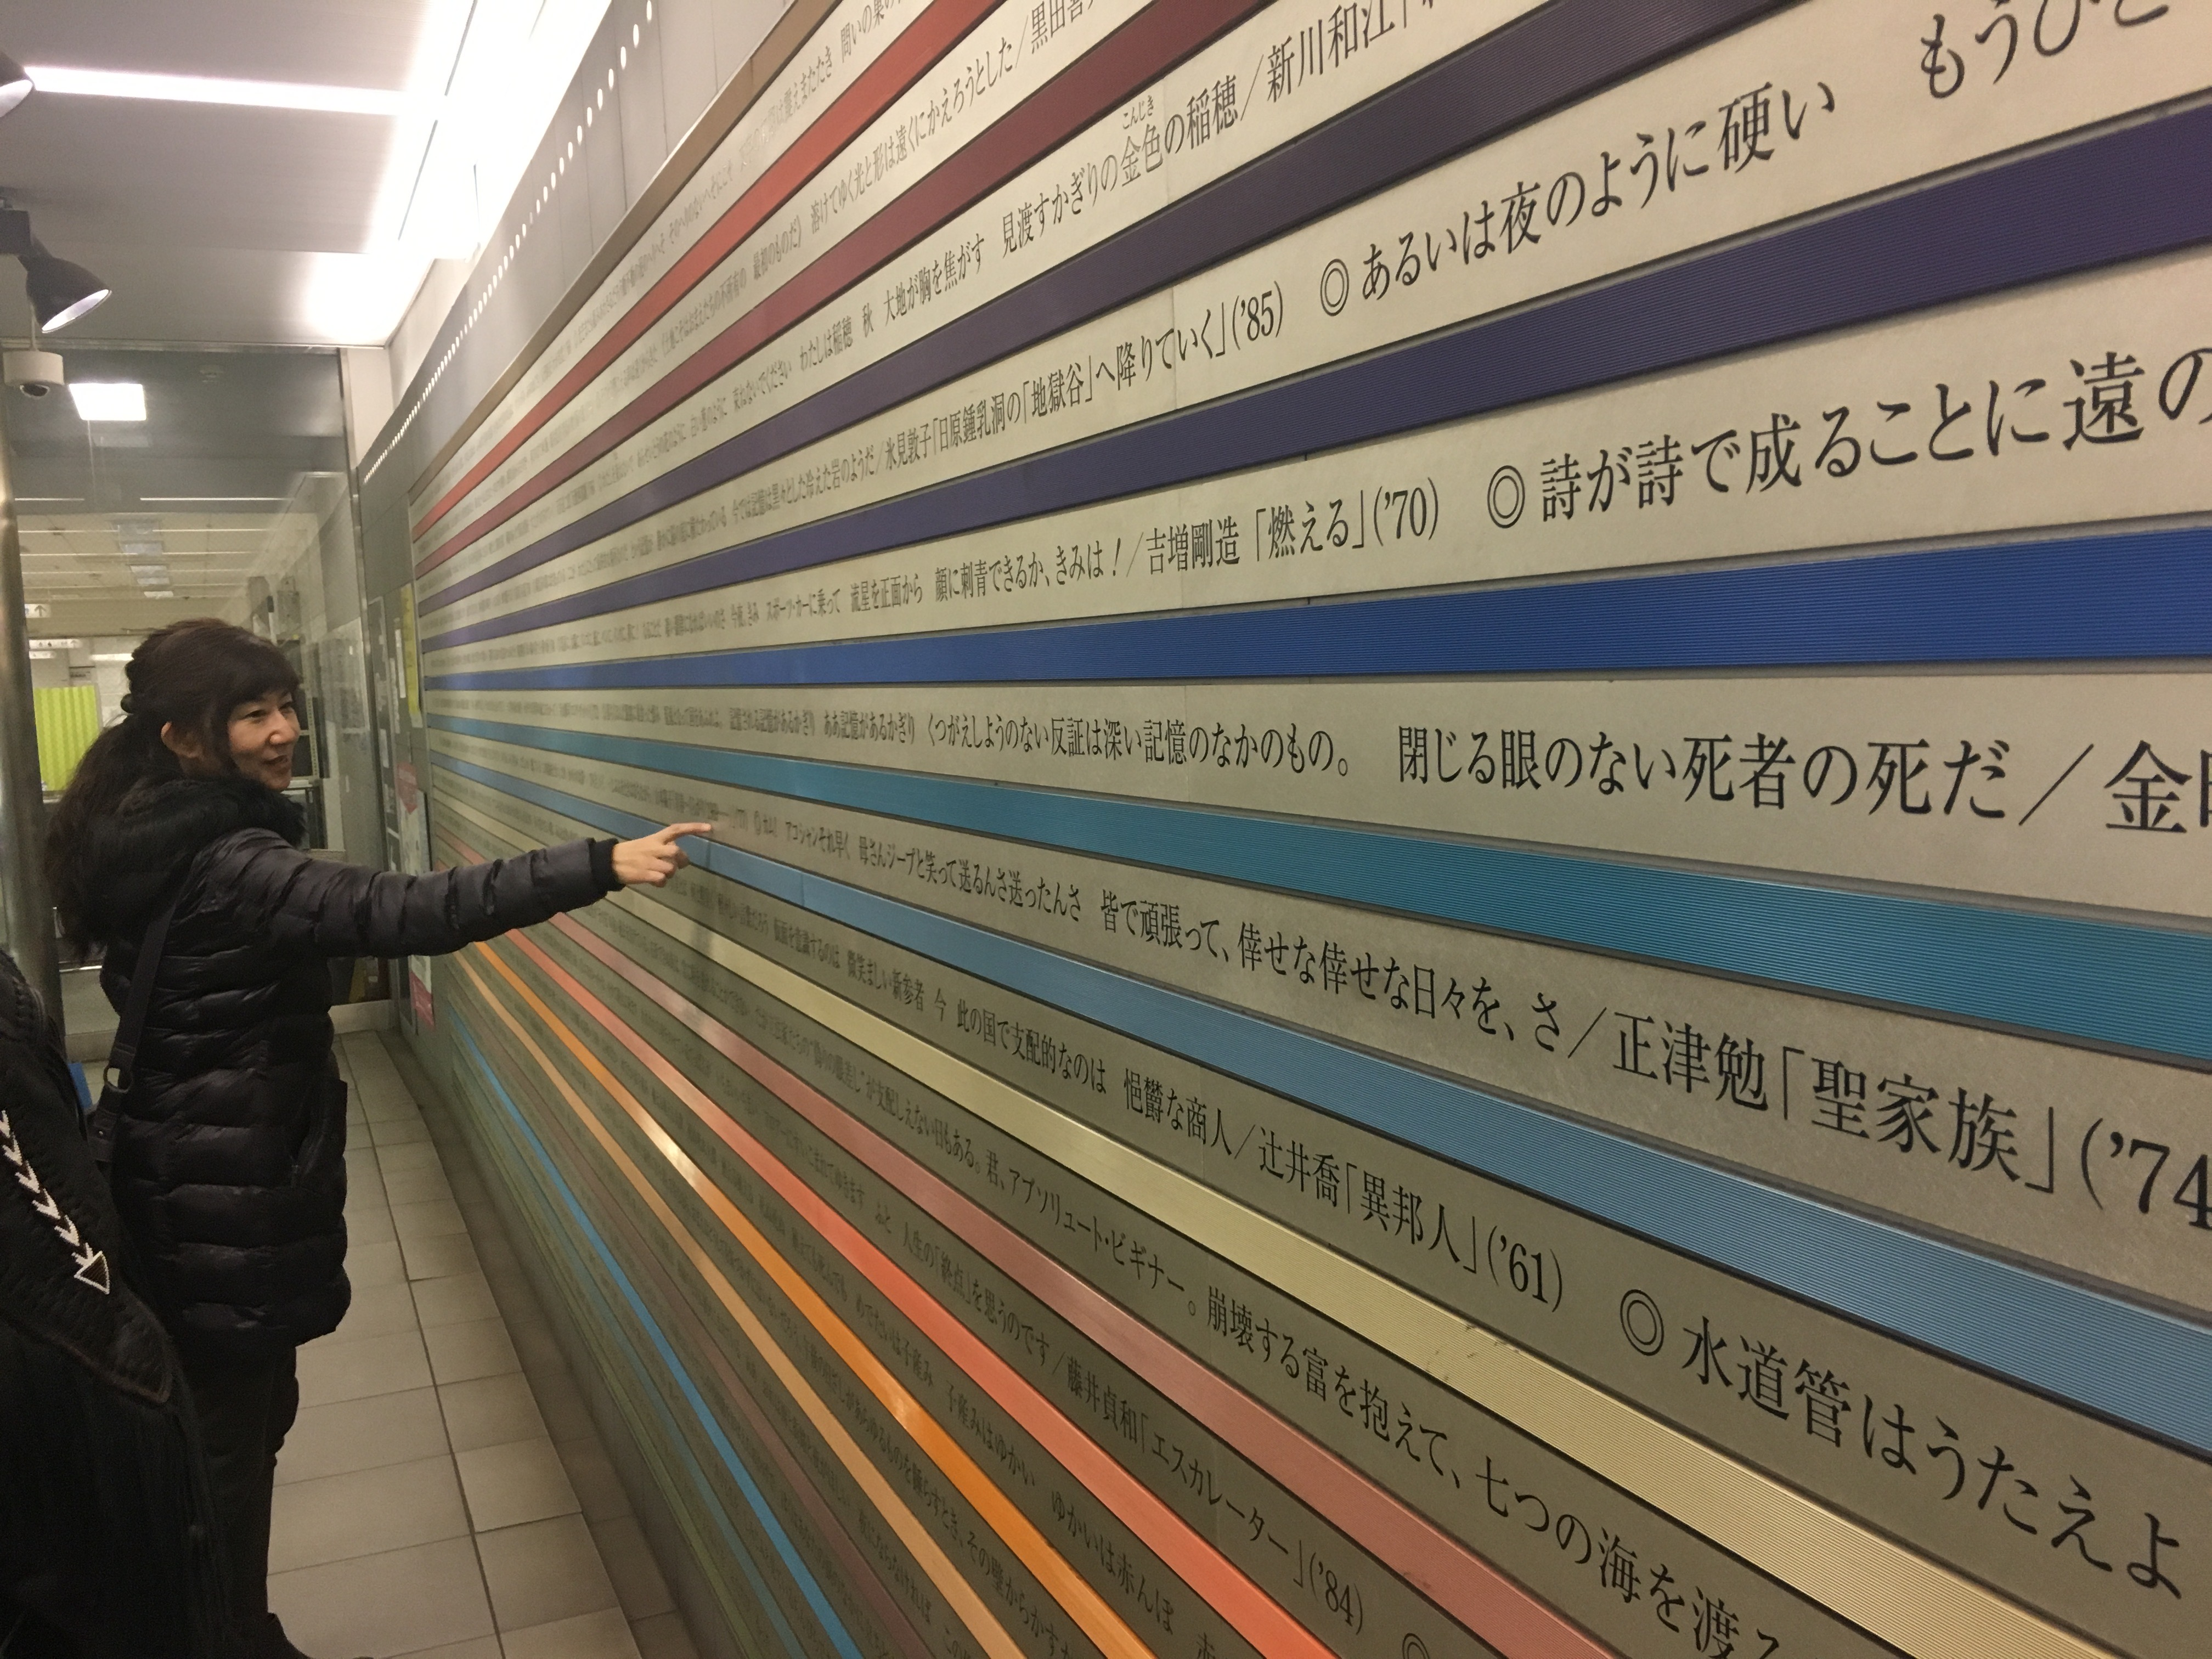 Professor Kazuyo Kubo looks at poetry printed on the walls of a subway station. Between each line is a band of color.